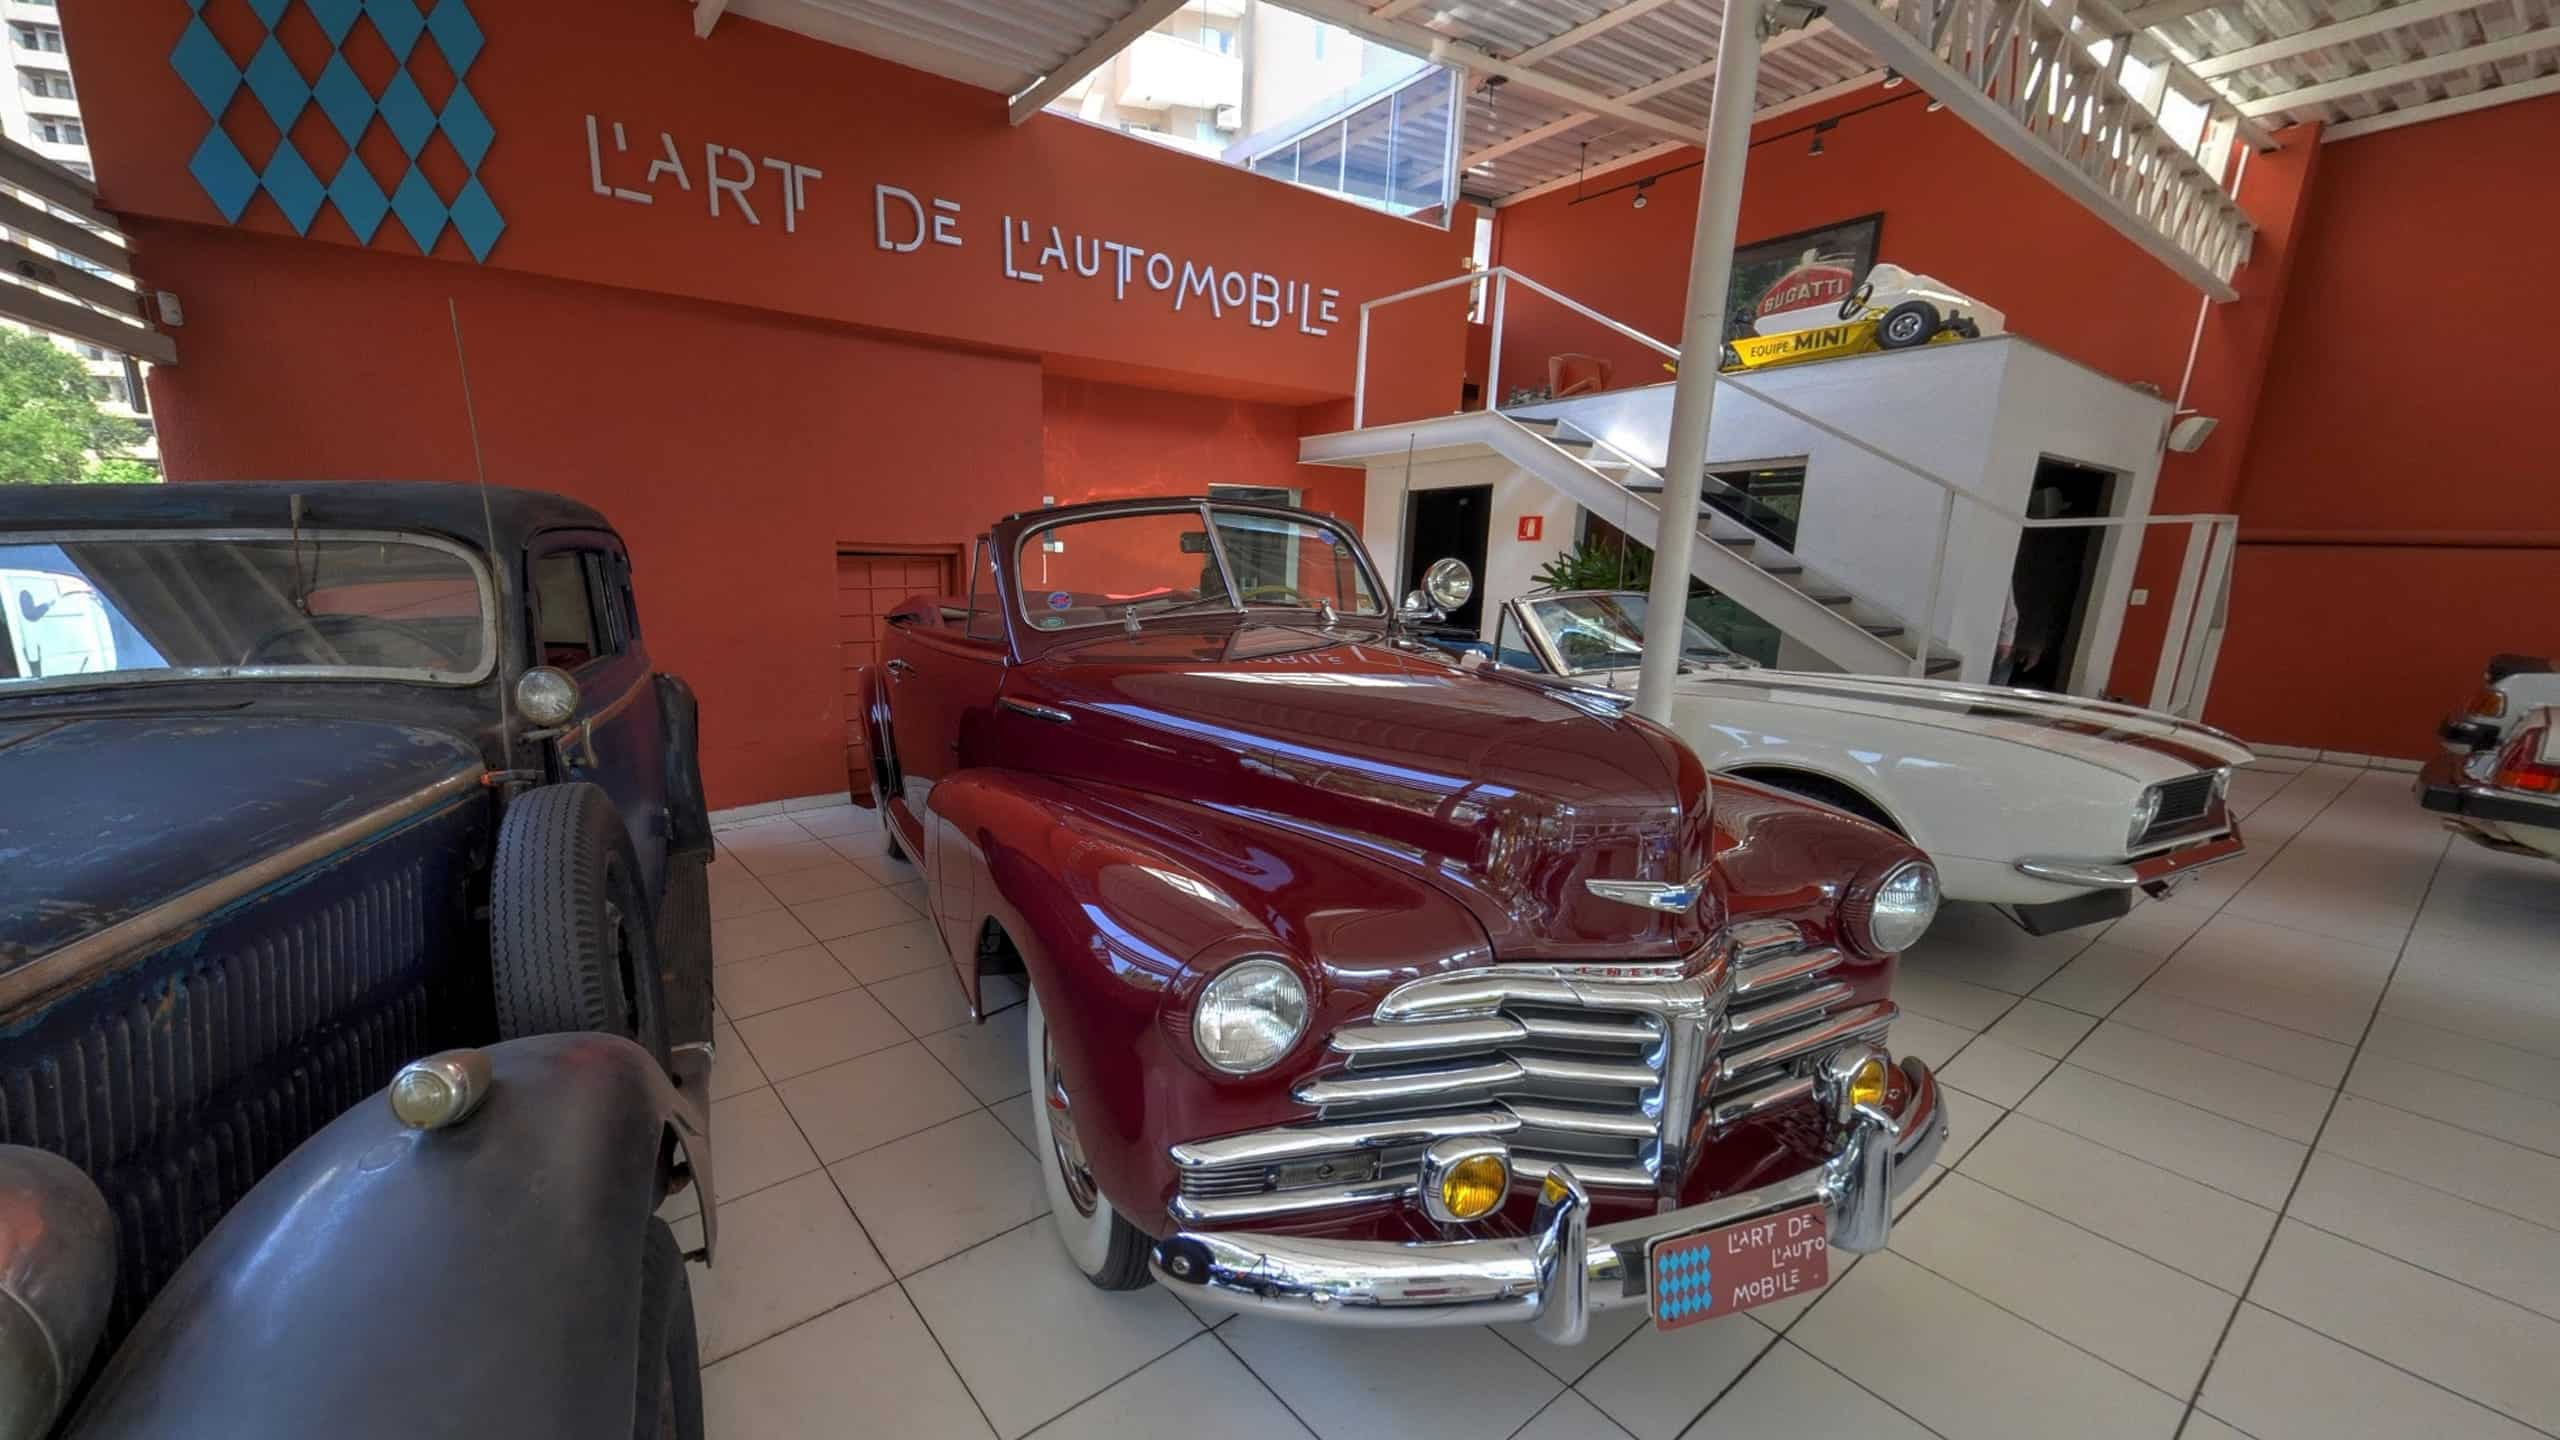 L'Art de L'Automobile - Tour Virtual Street View Trusted - 3603D